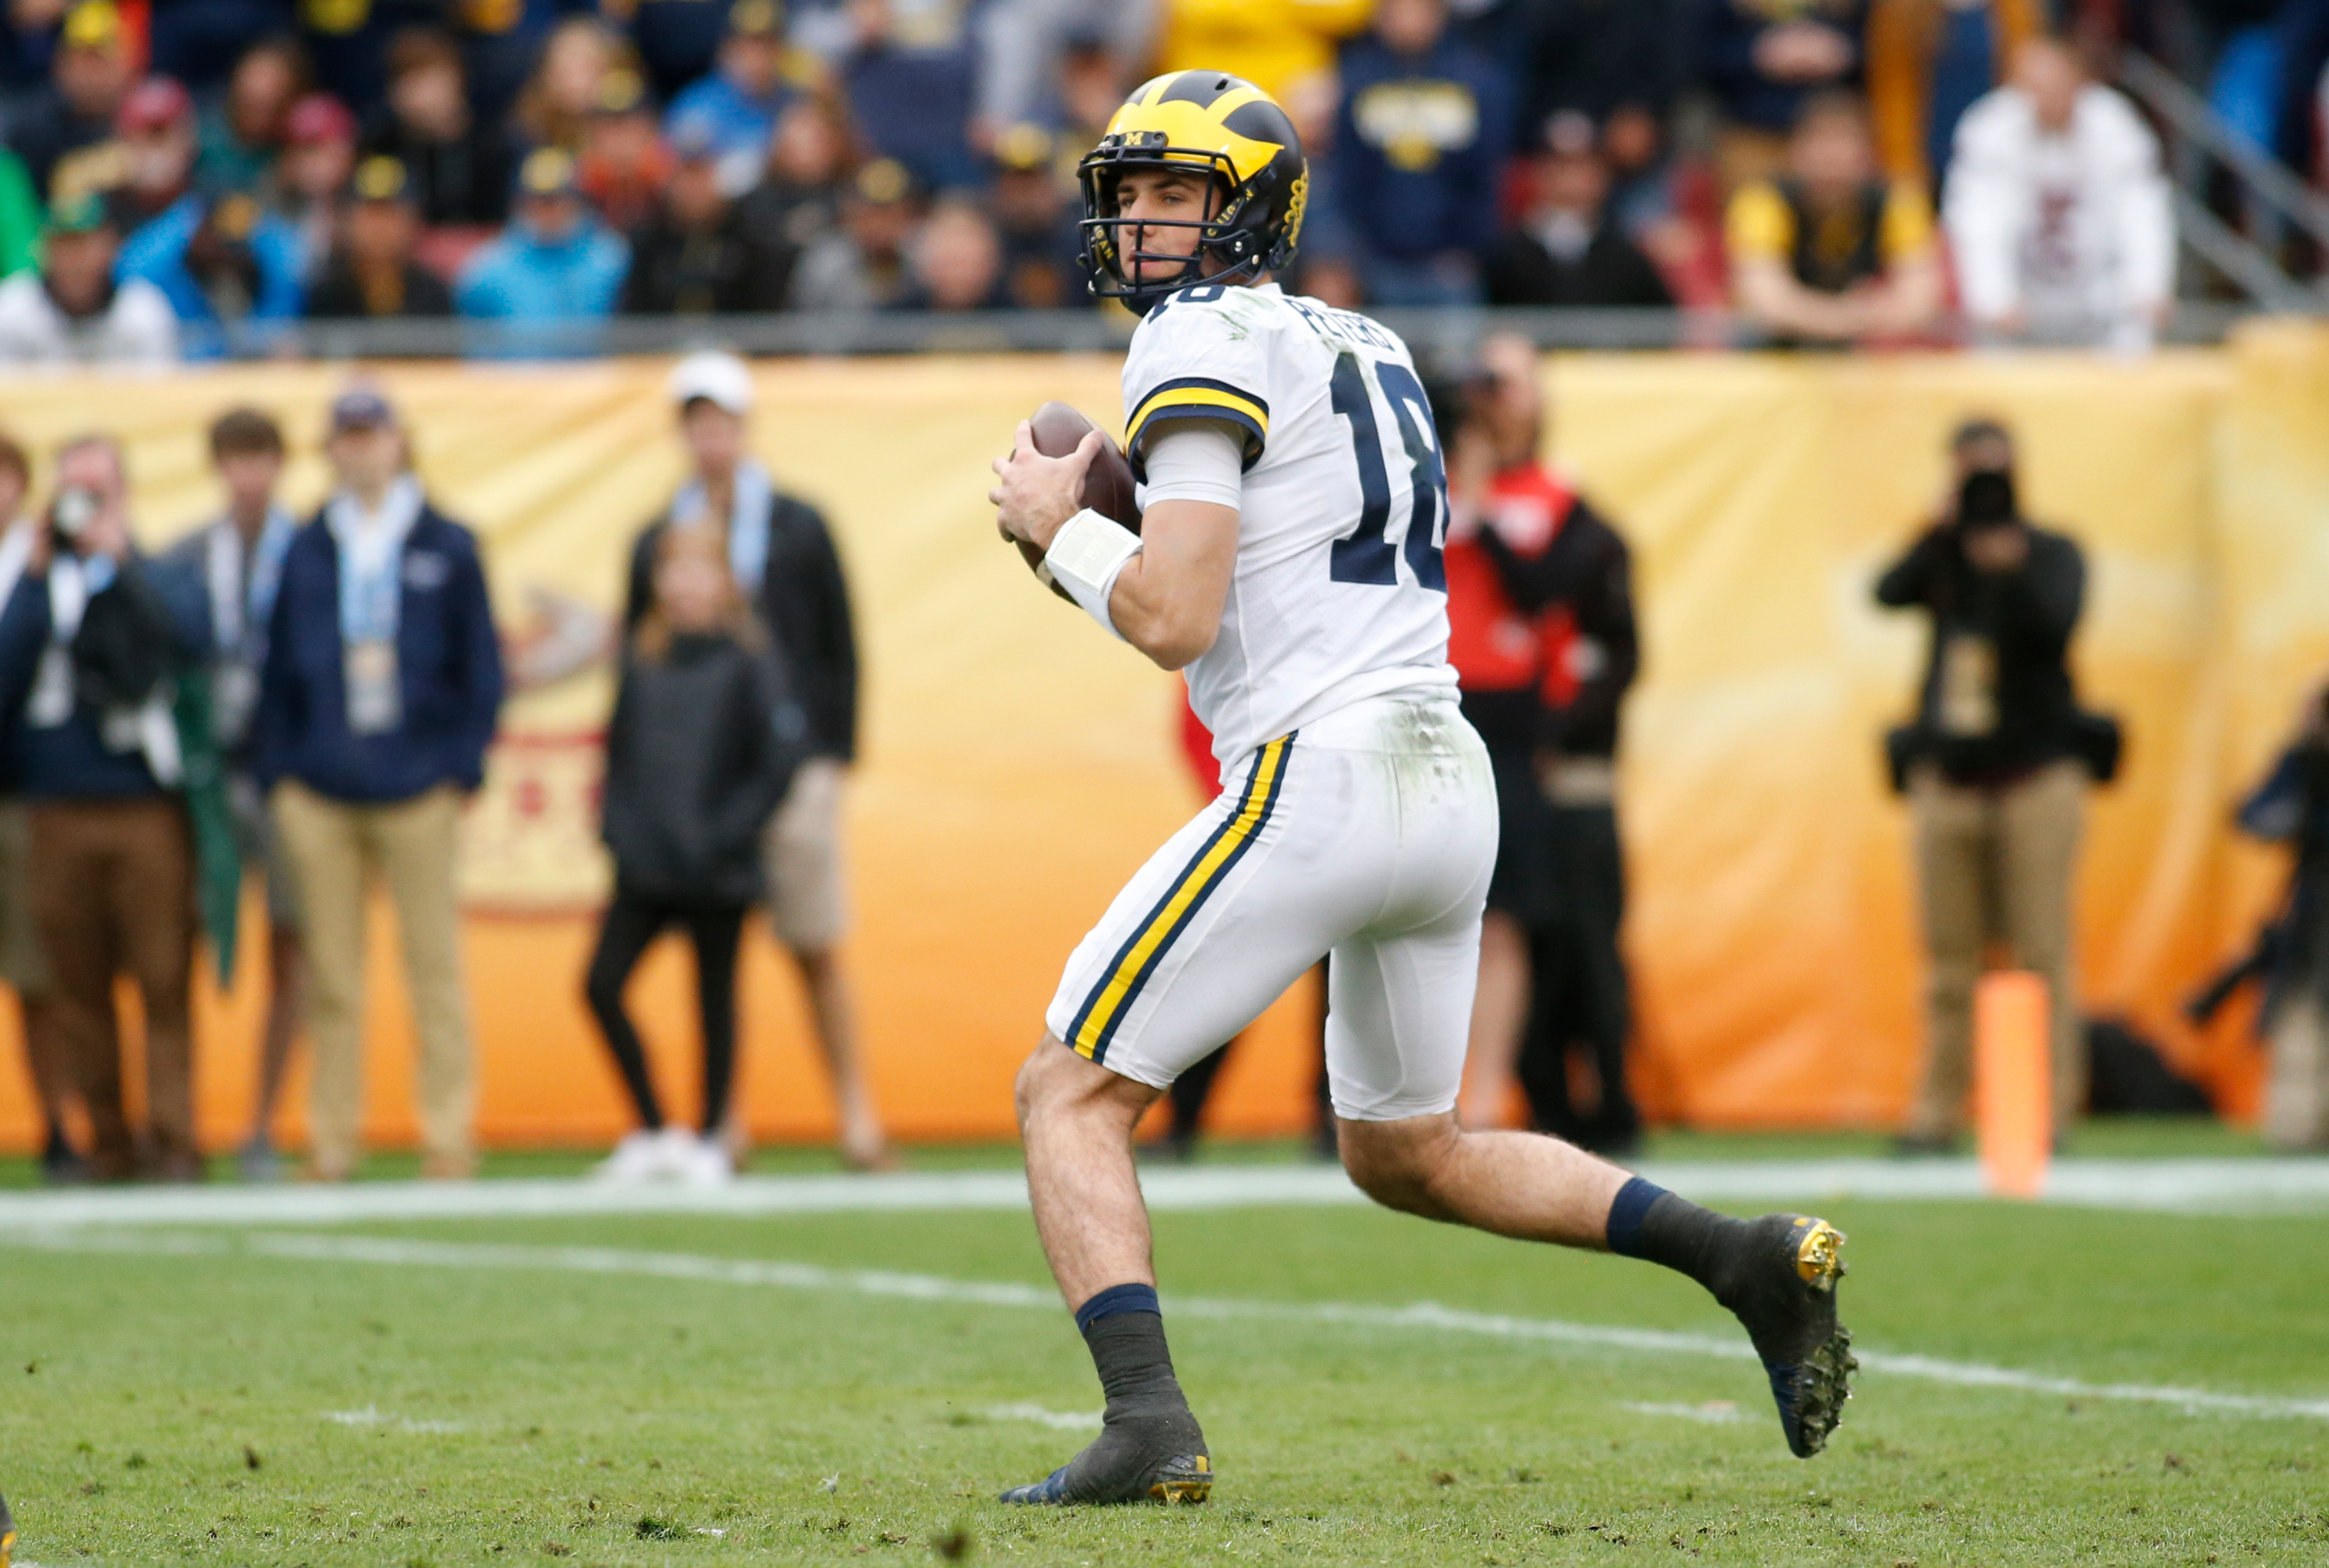 michigan football outback bowl exposes brandon peters as not ready https gbmwolverine com 2018 01 01 michigan football outback bowl exposes brandon peters as not ready